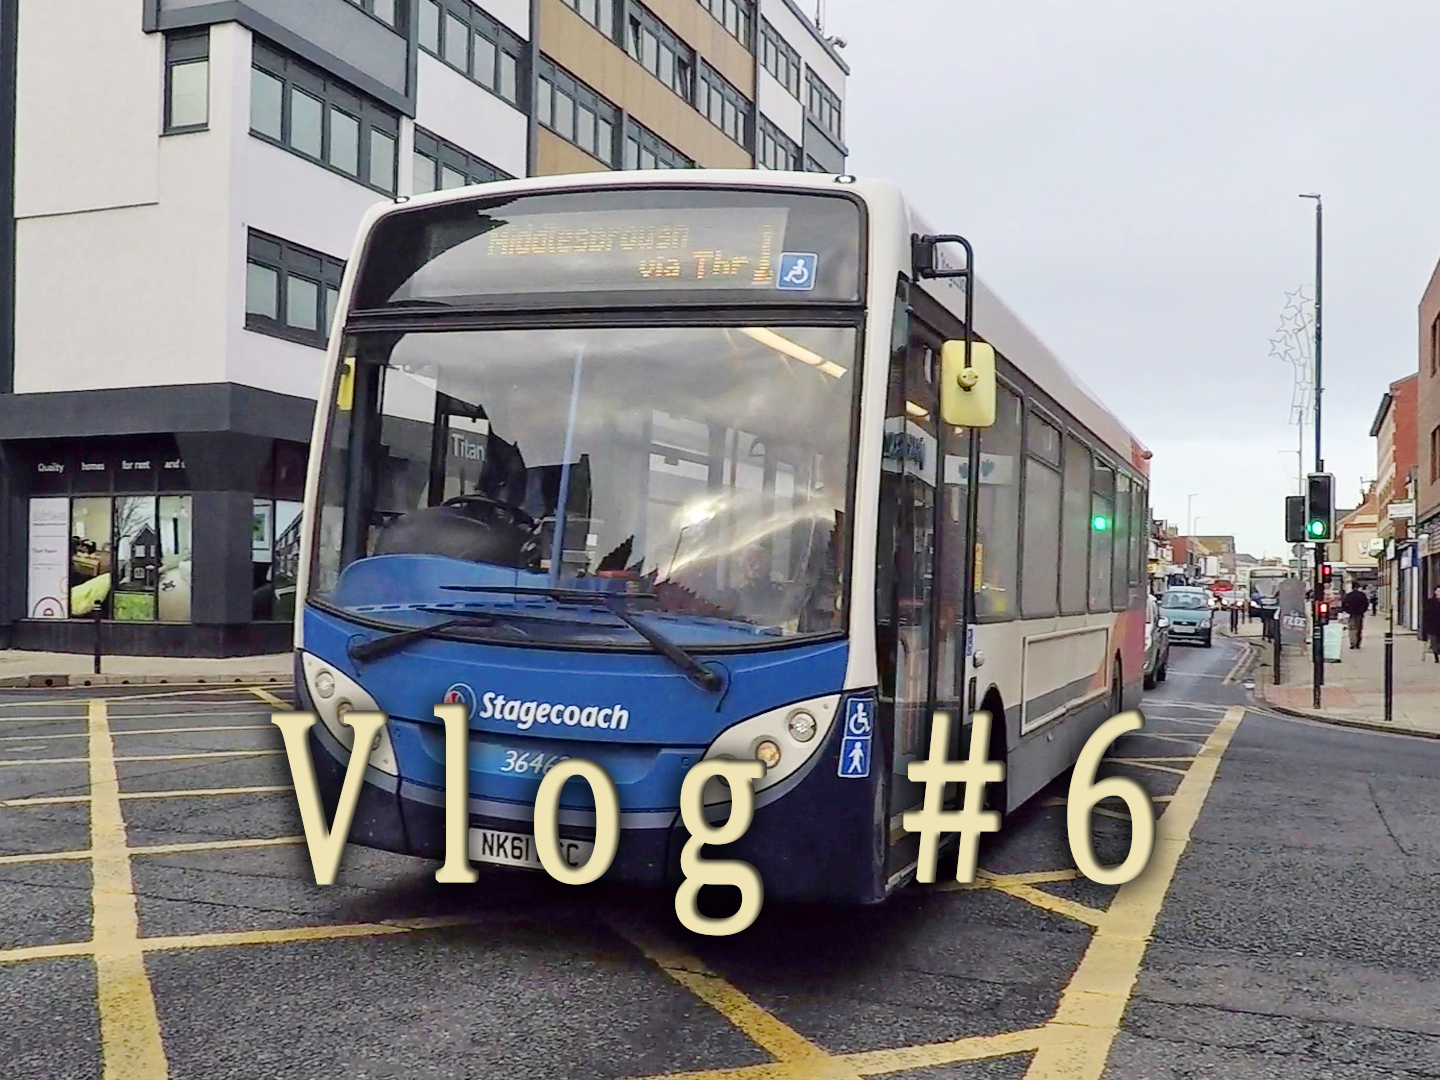 Bus vlog number 6 from Hartlepool, Cleveland.